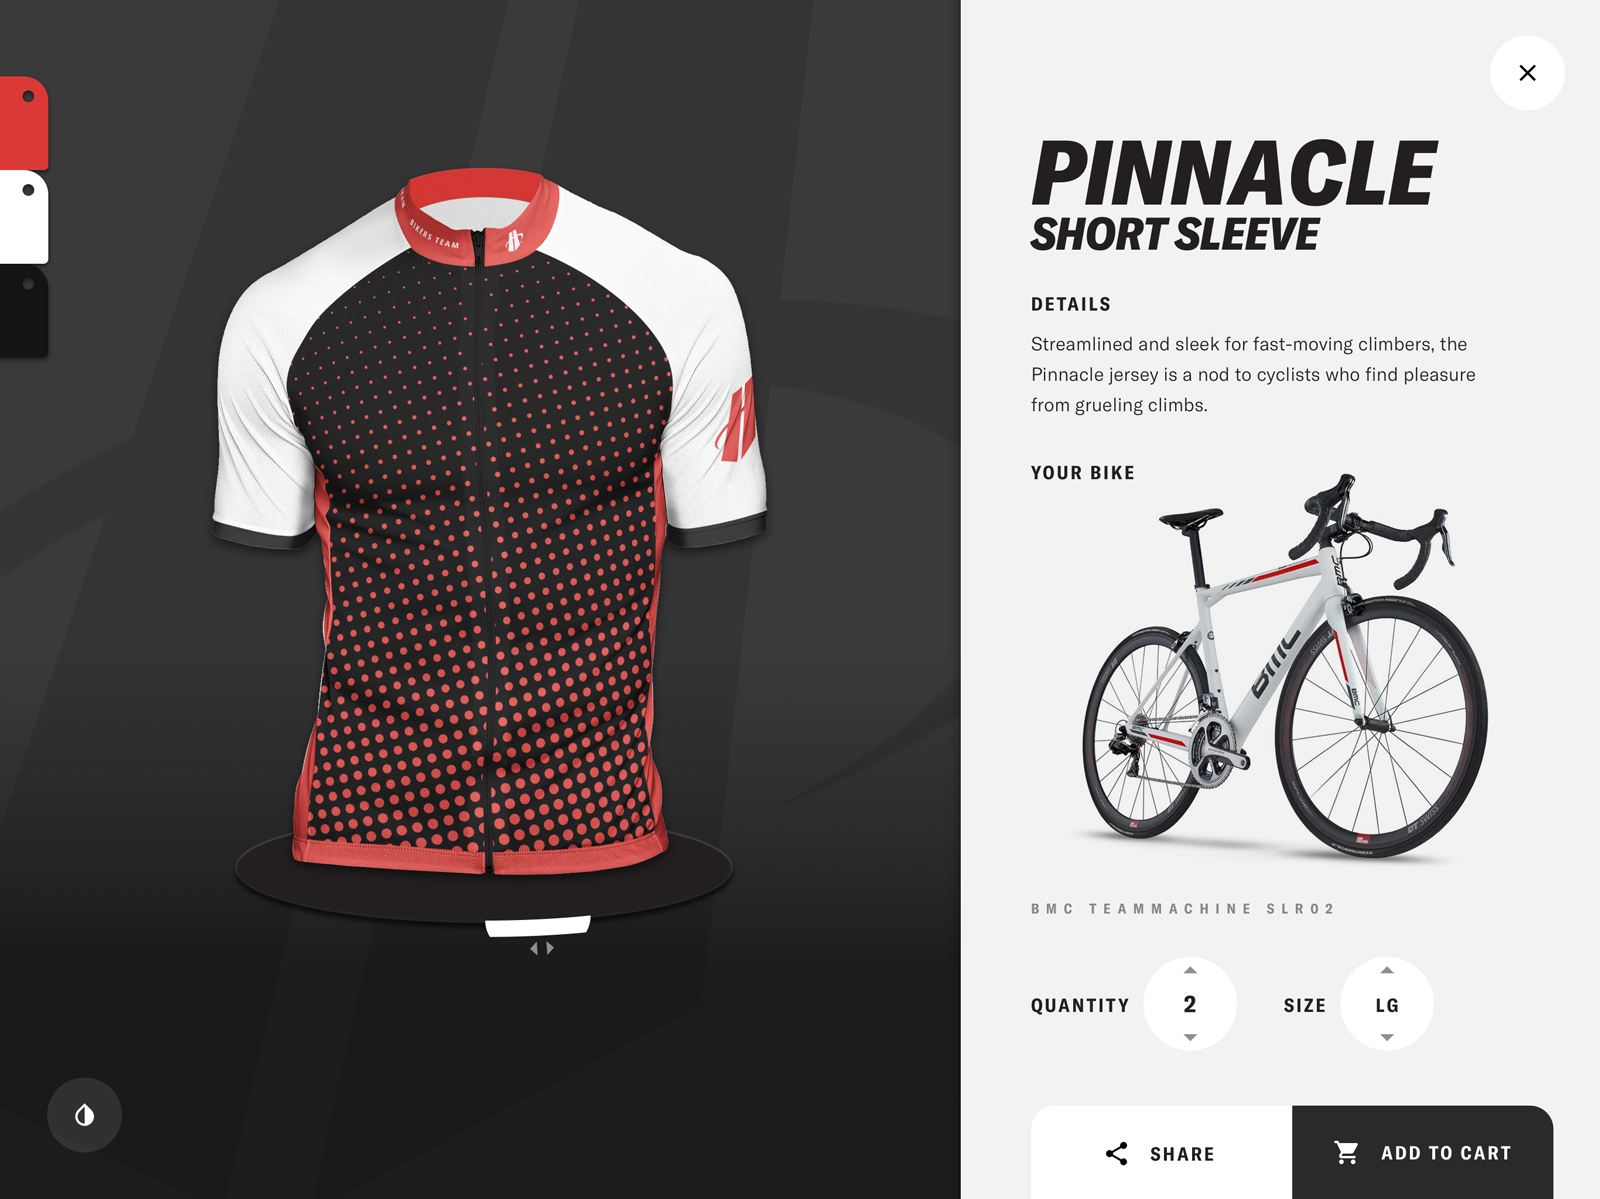 A view of the Hincapie Custom Kit Designer that shows the jersey you've designed